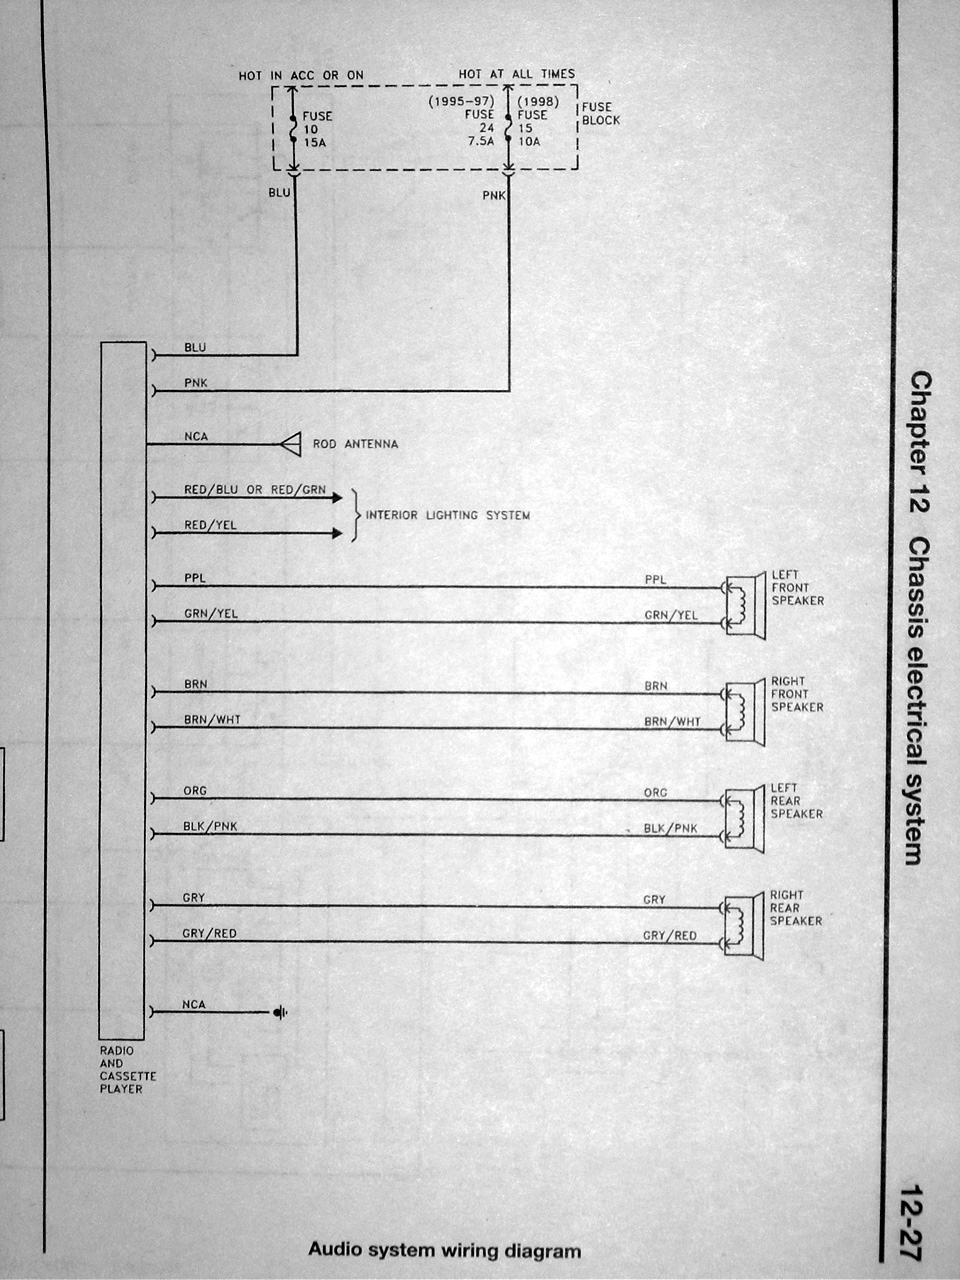 DSC01849 wiring diagram thread *useful info* nissan forum 2004 nissan xterra wiring diagram at soozxer.org